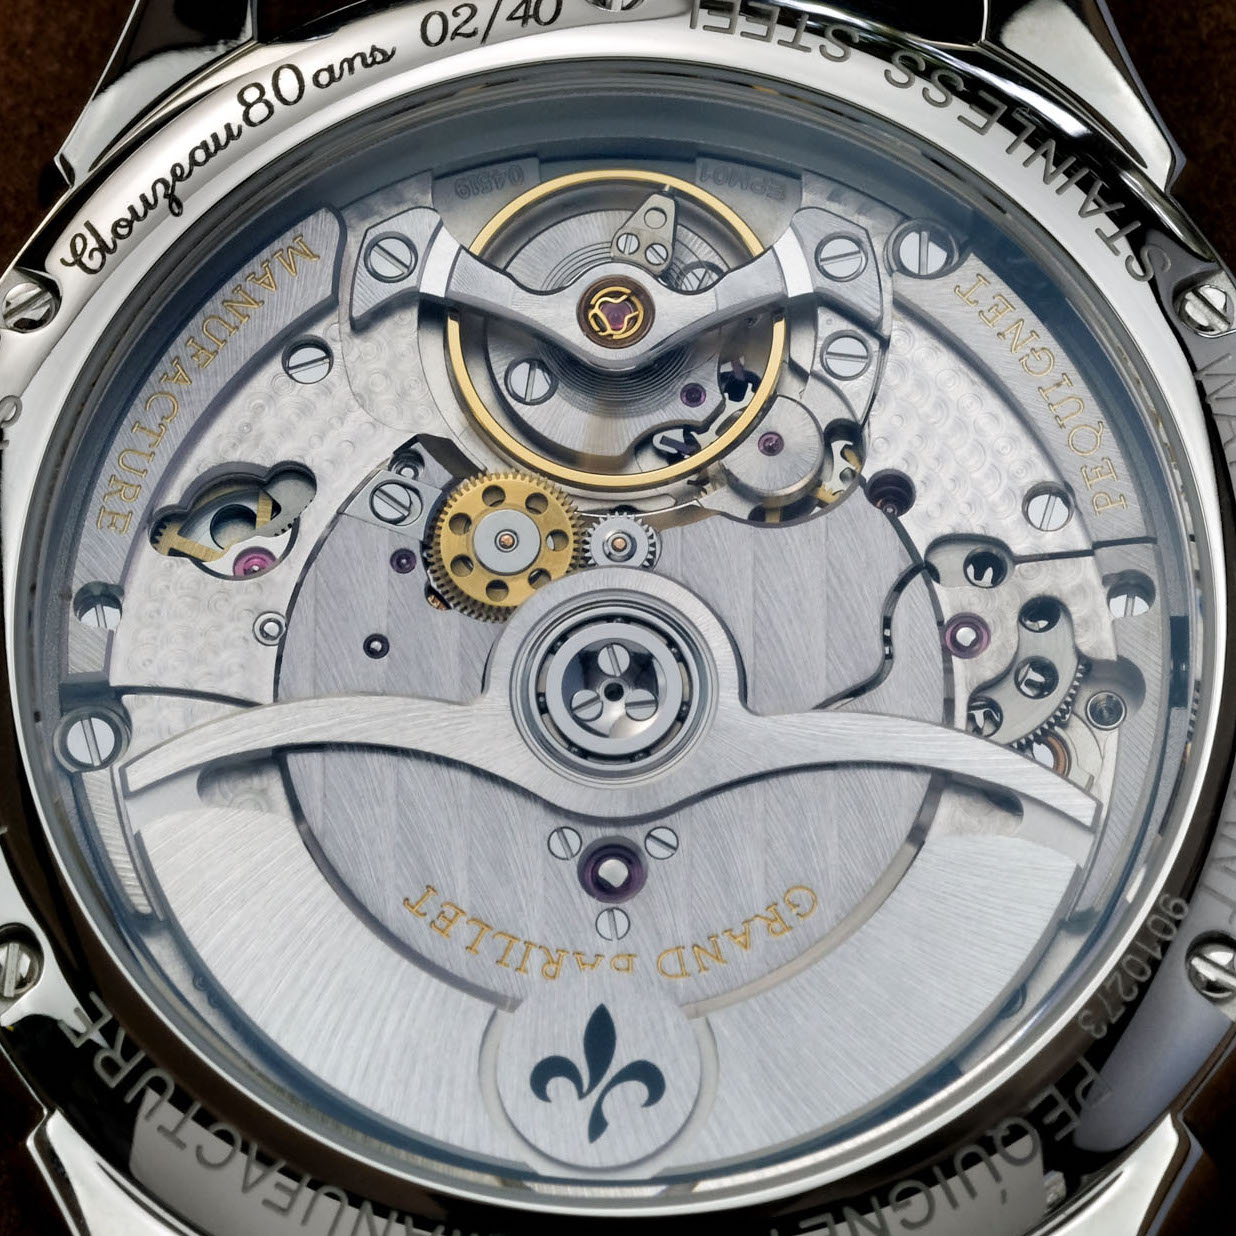 Pequignet calibre royale automatic in-house